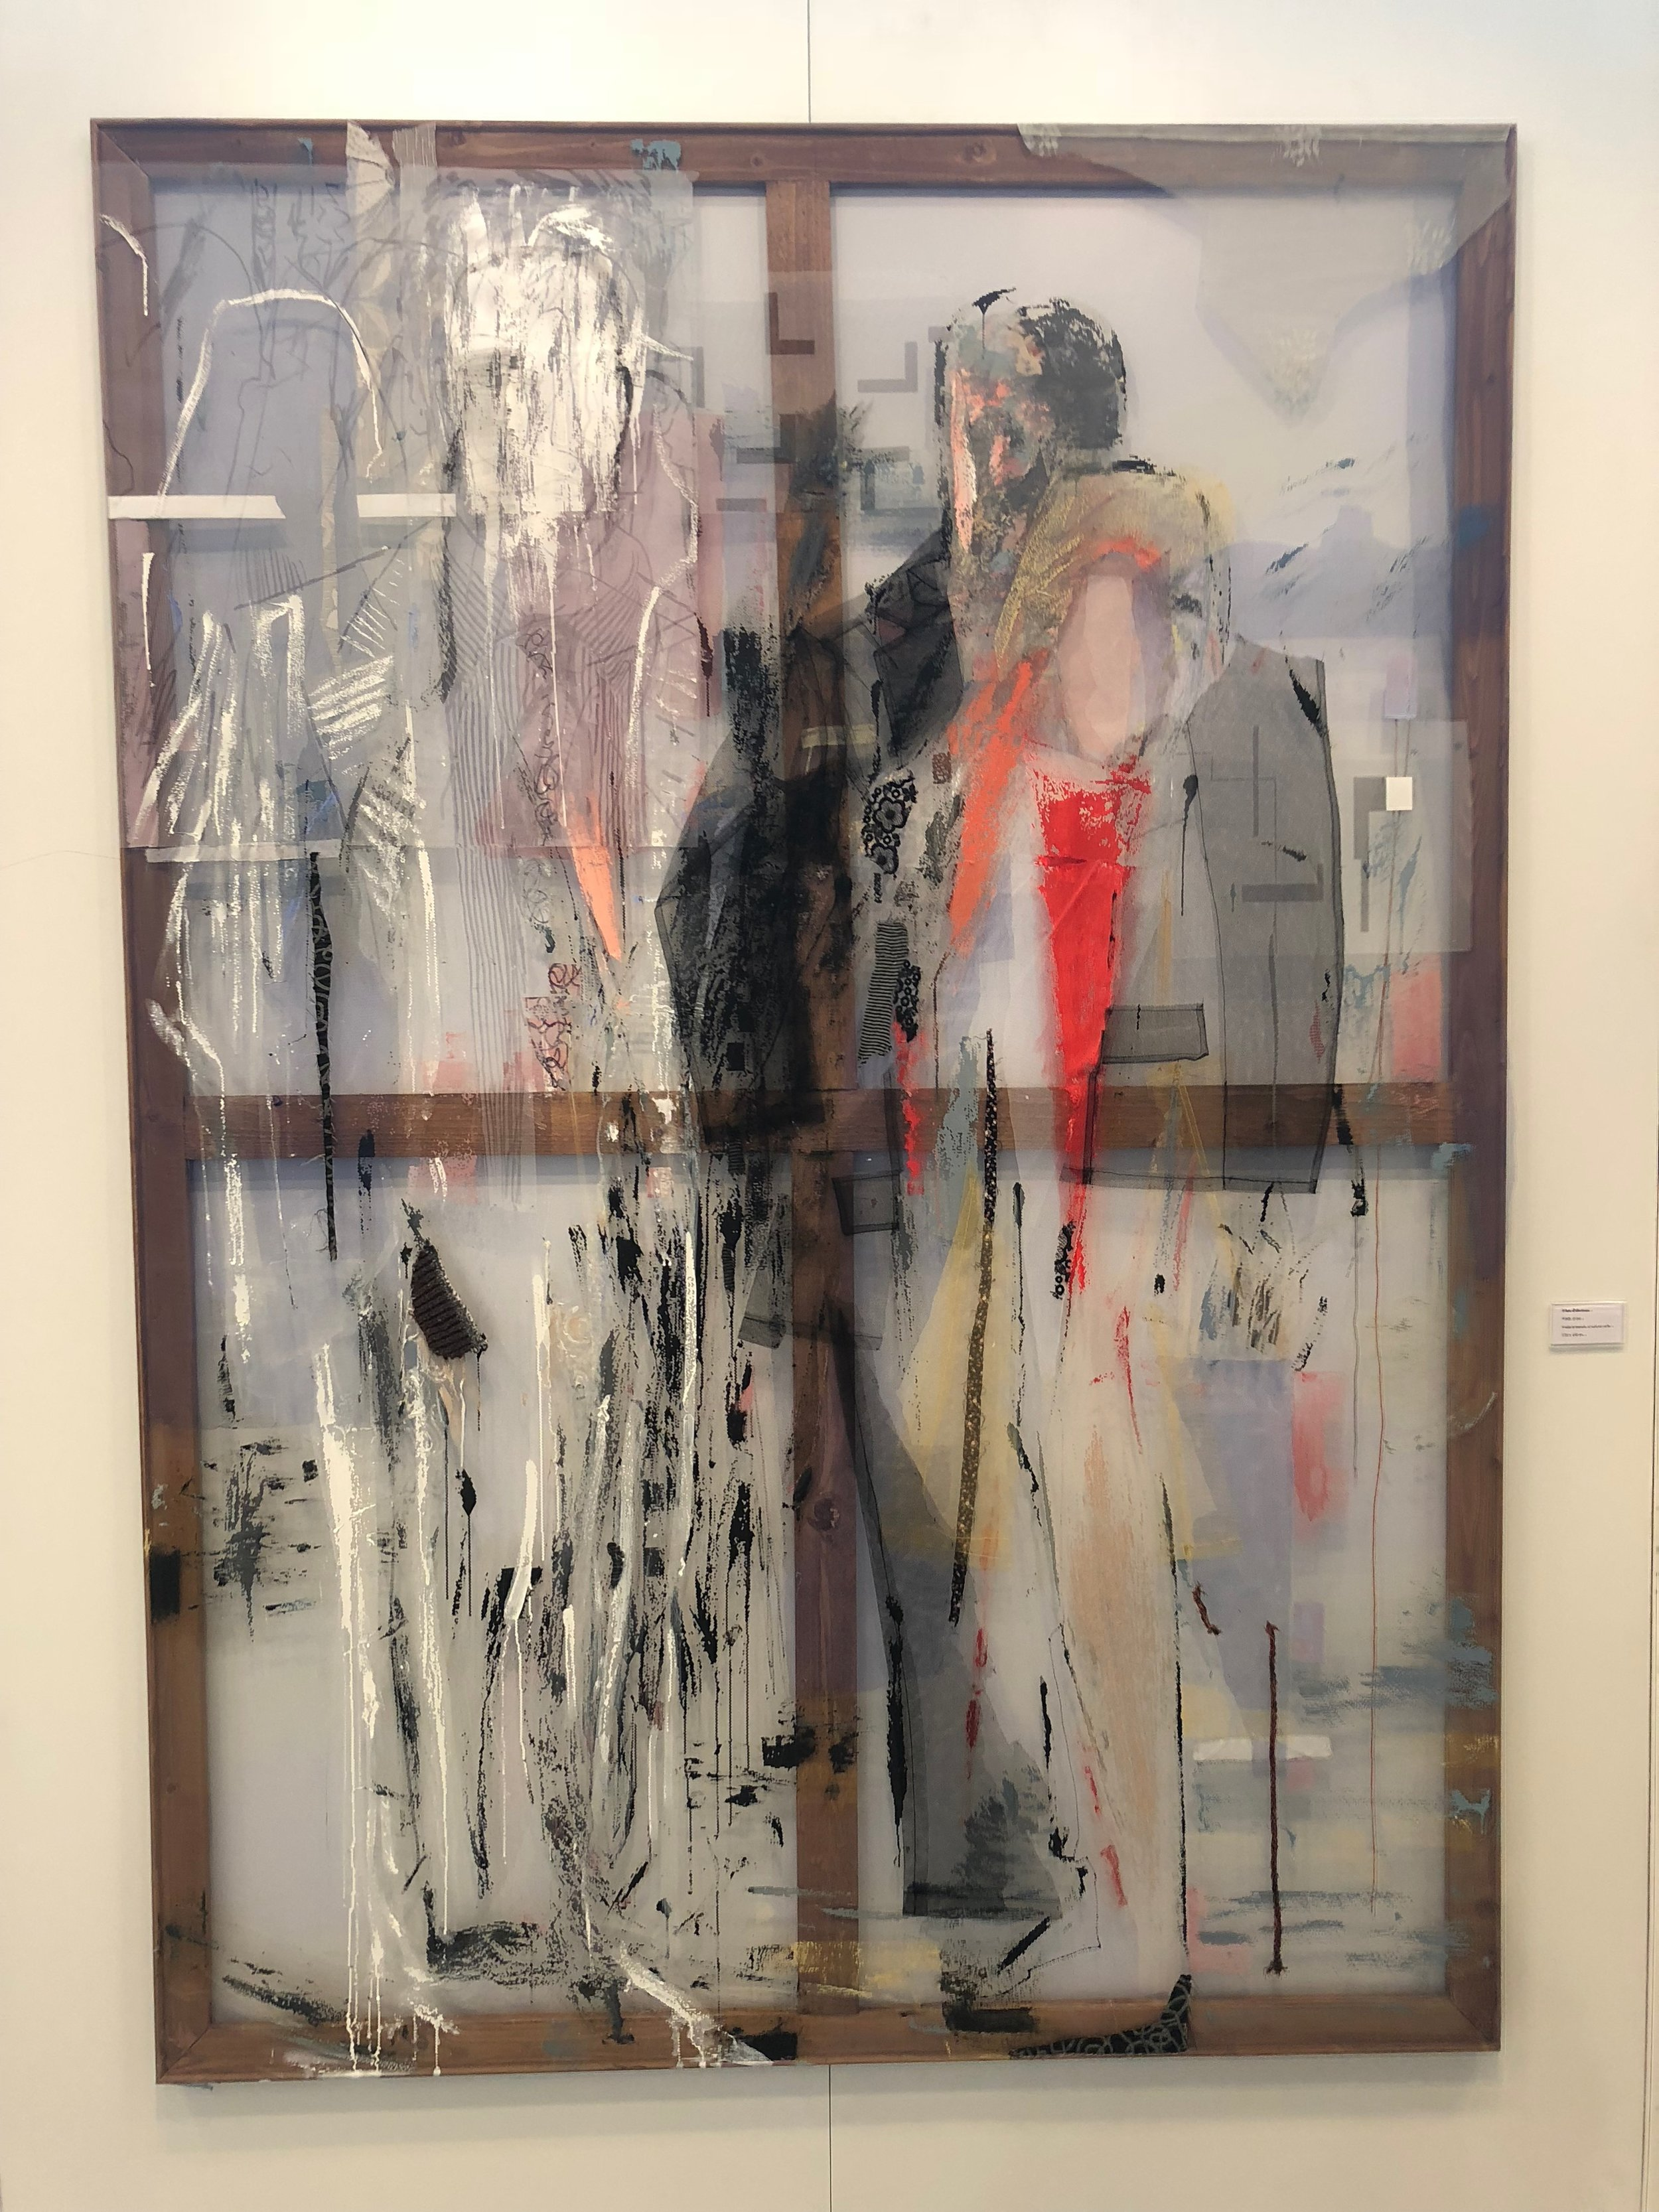 Irfan Onurmen's textiles and acrylic at C24 Gallery